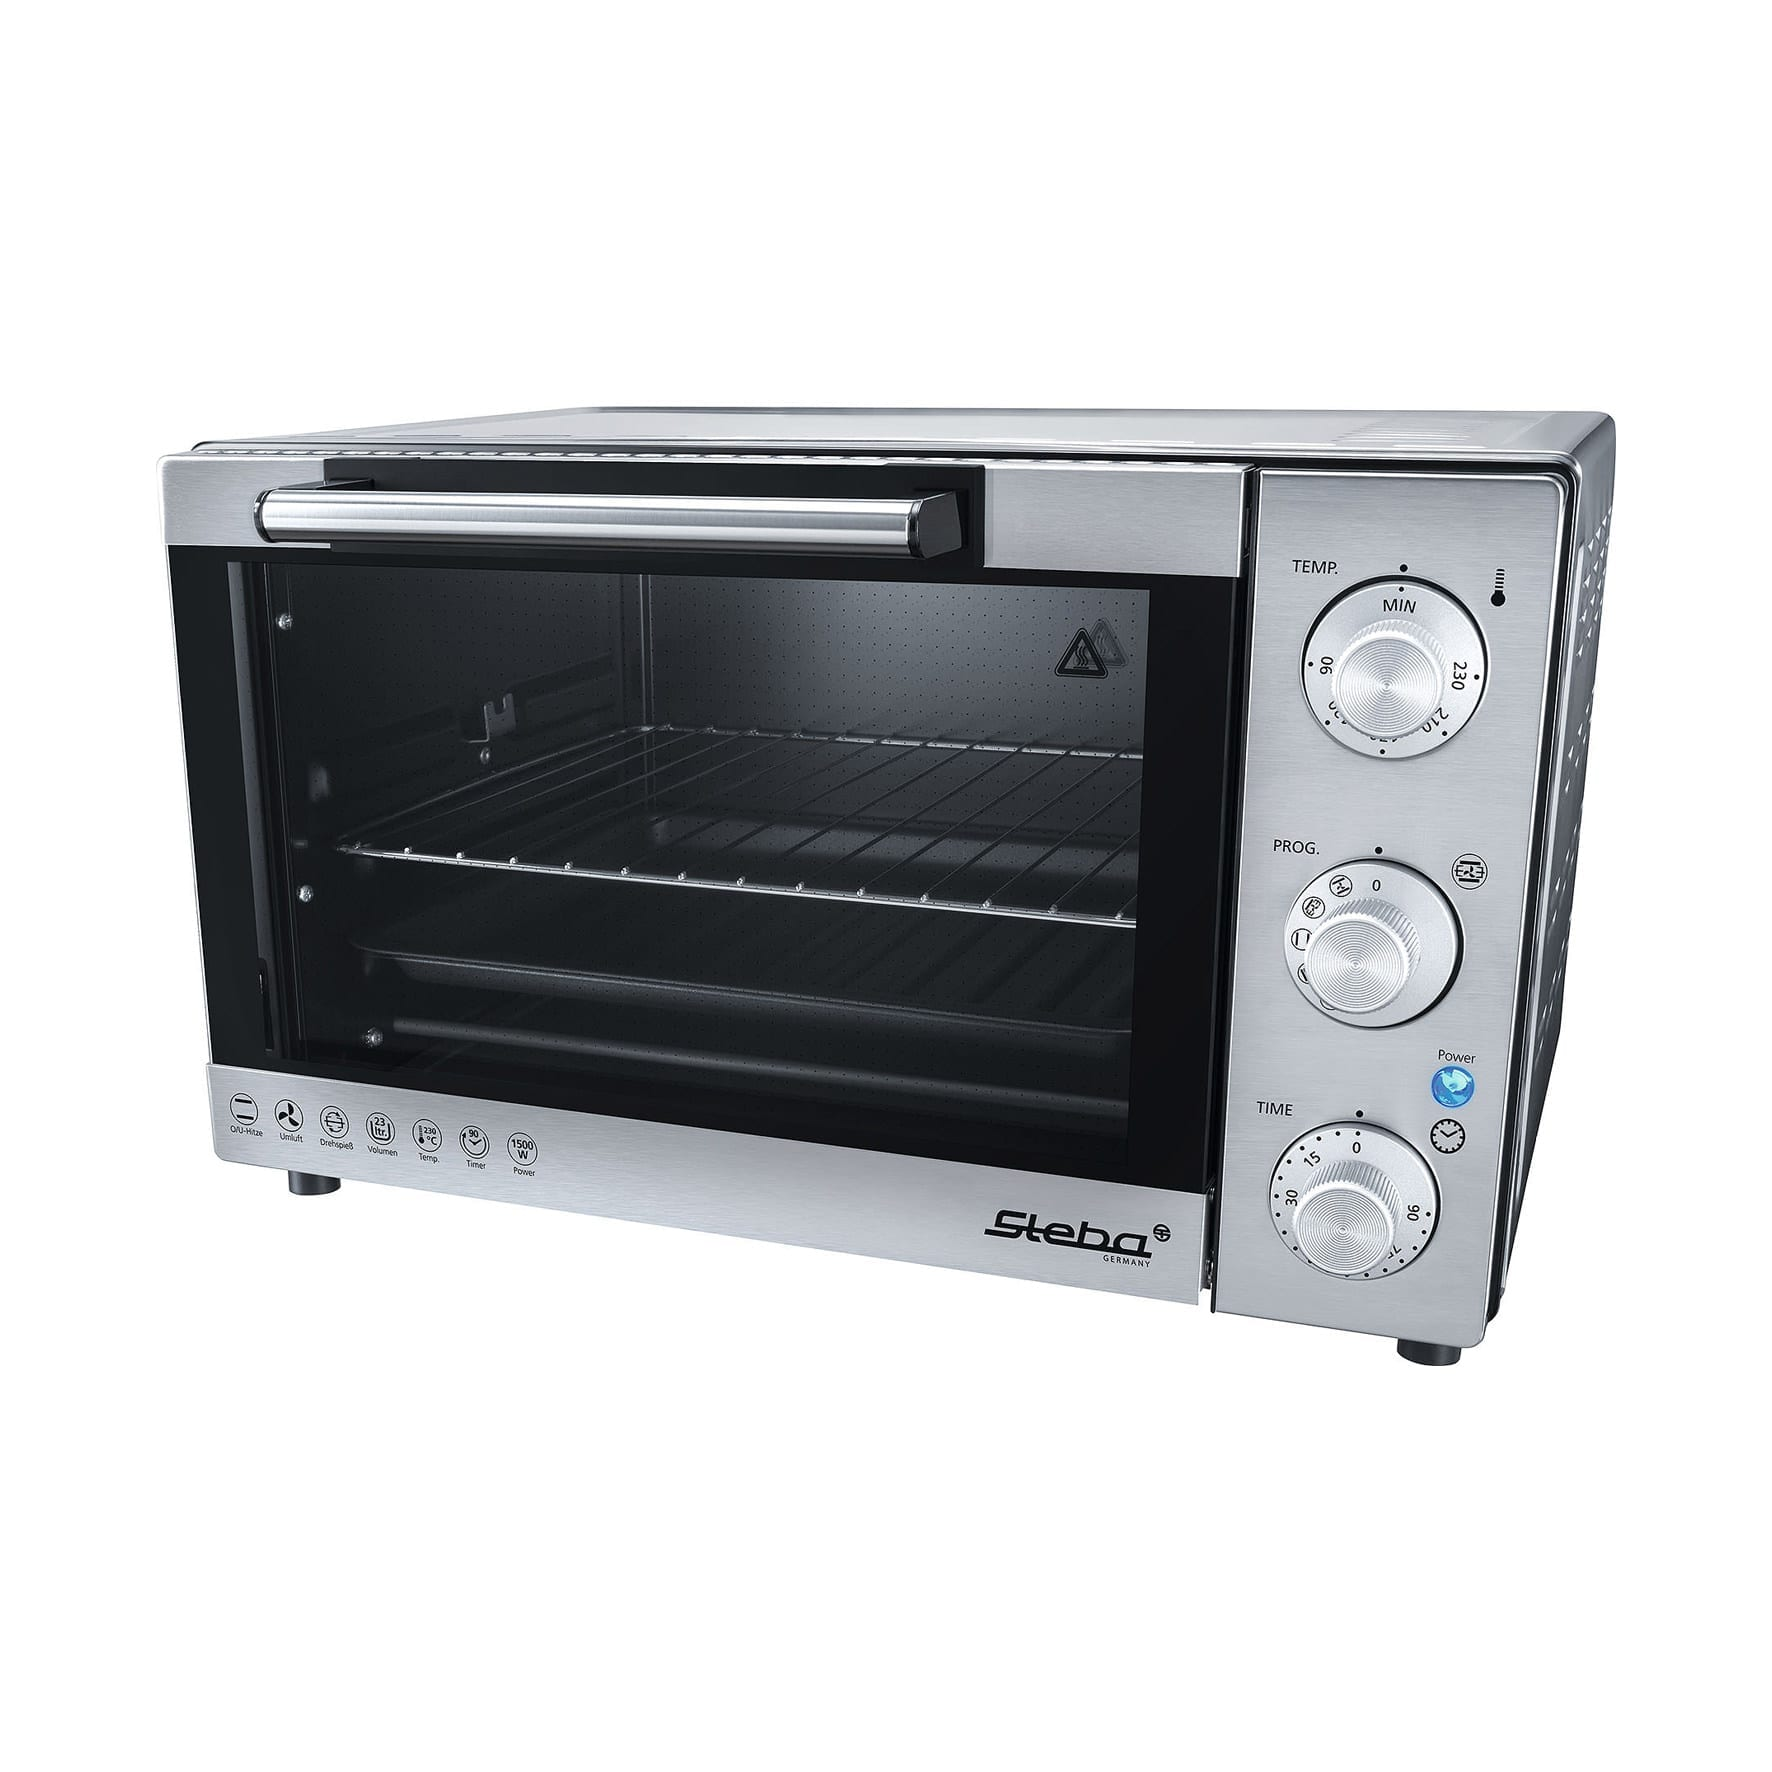 Home / Baking / Compact Bake Ovens / Grill and bake oven KB 23